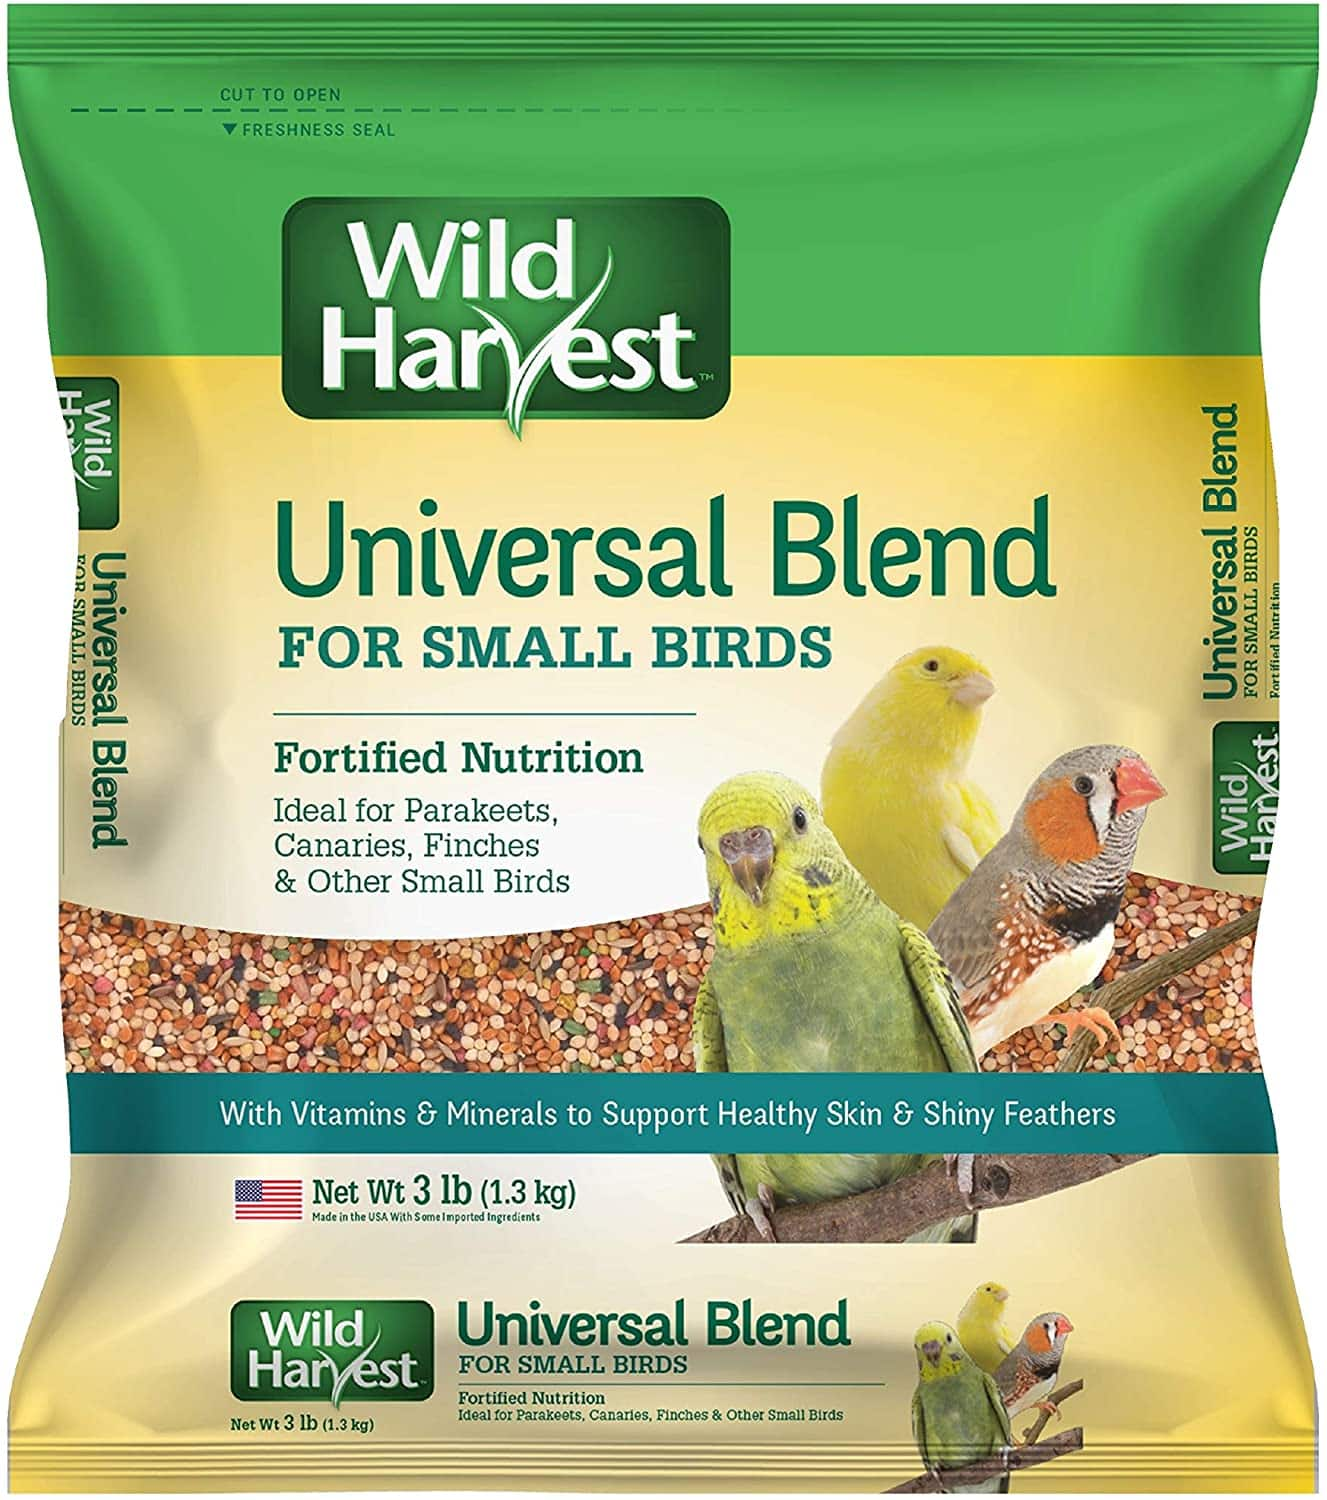 3-Lb Wild Harvest Universal Blend Small Bird Food $3.20 + Free Shipping w/ Prime or $25+